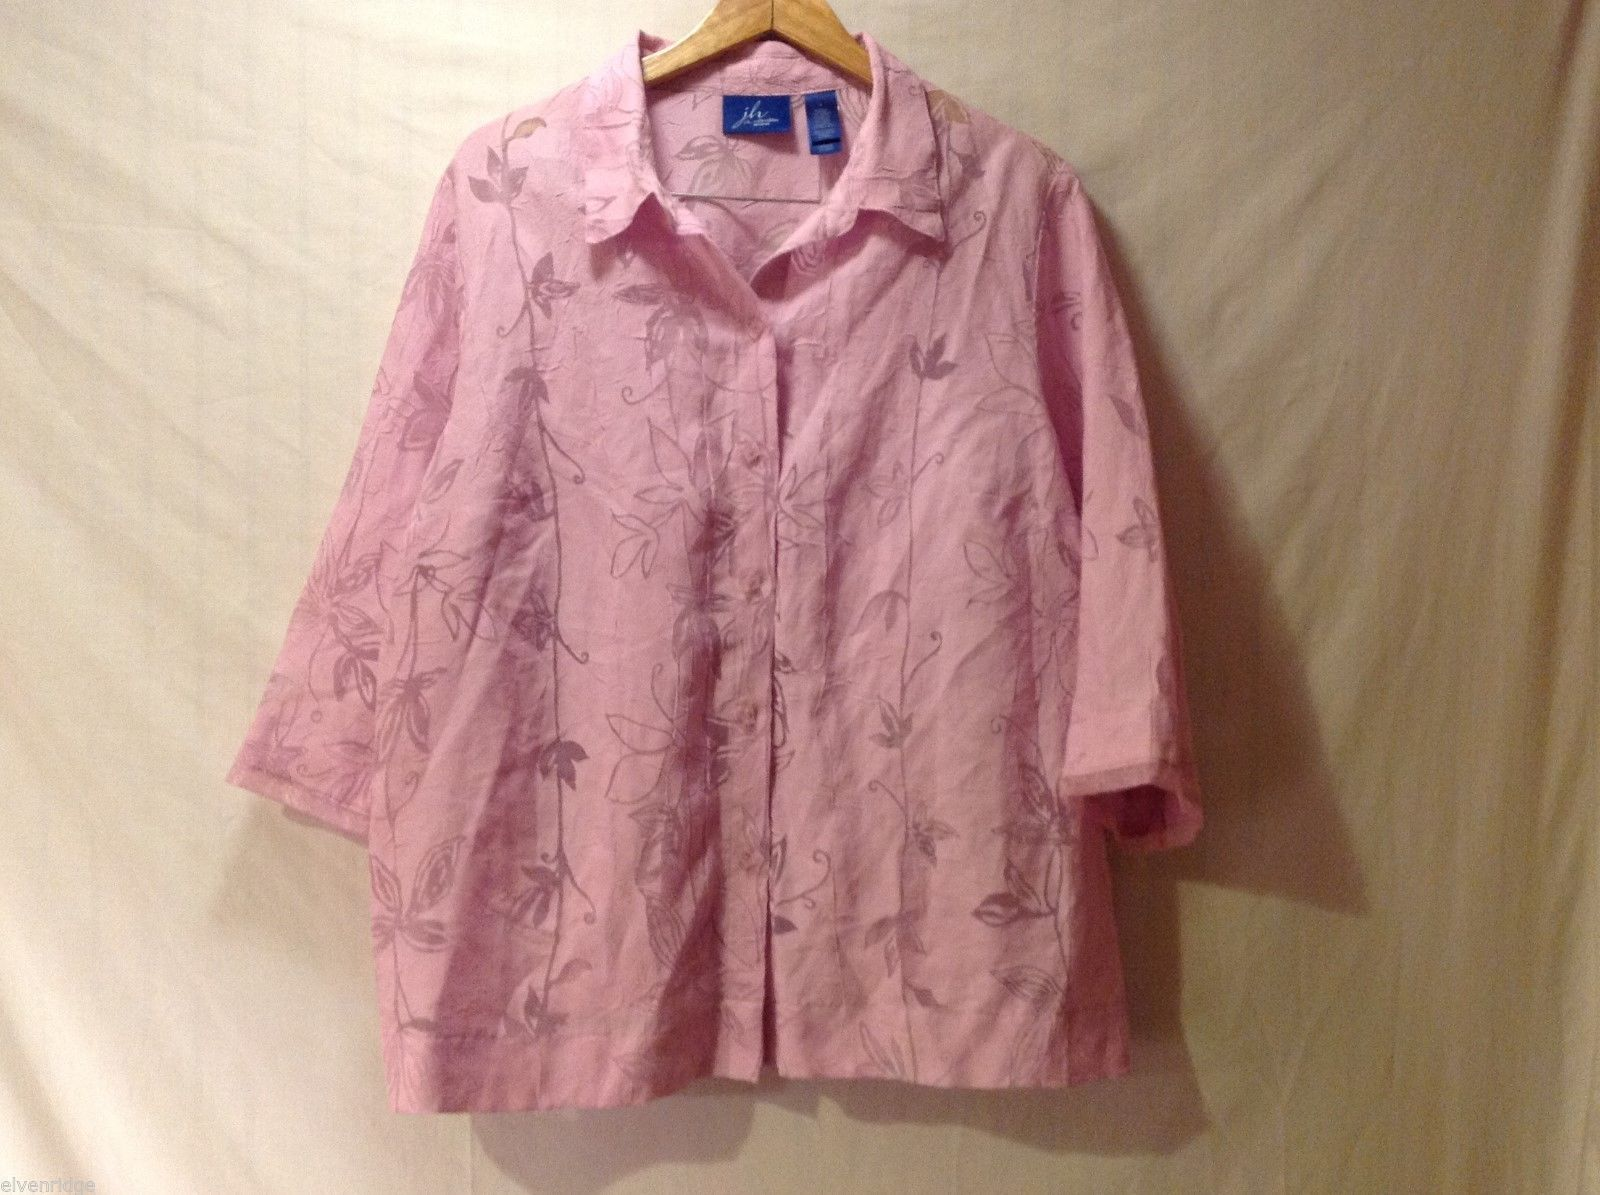 Womens J.H. Collection Pink Button Up Shirt w/ Floral Pattern, Size 3